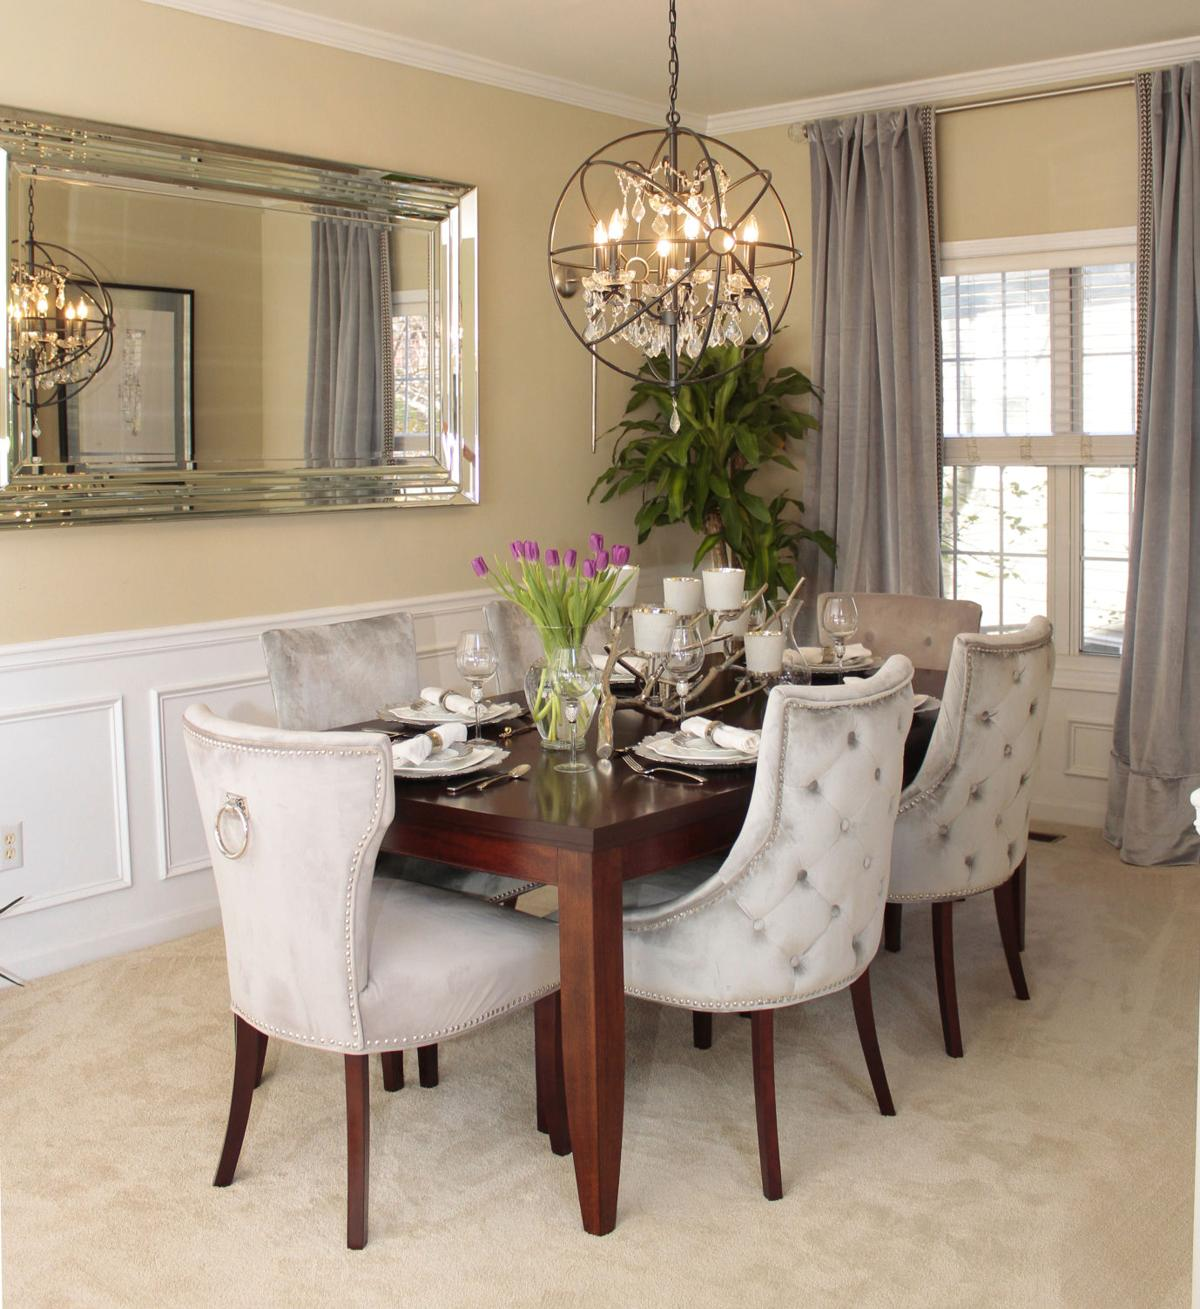 New Life Changes Turned This Dining Room From Beige To